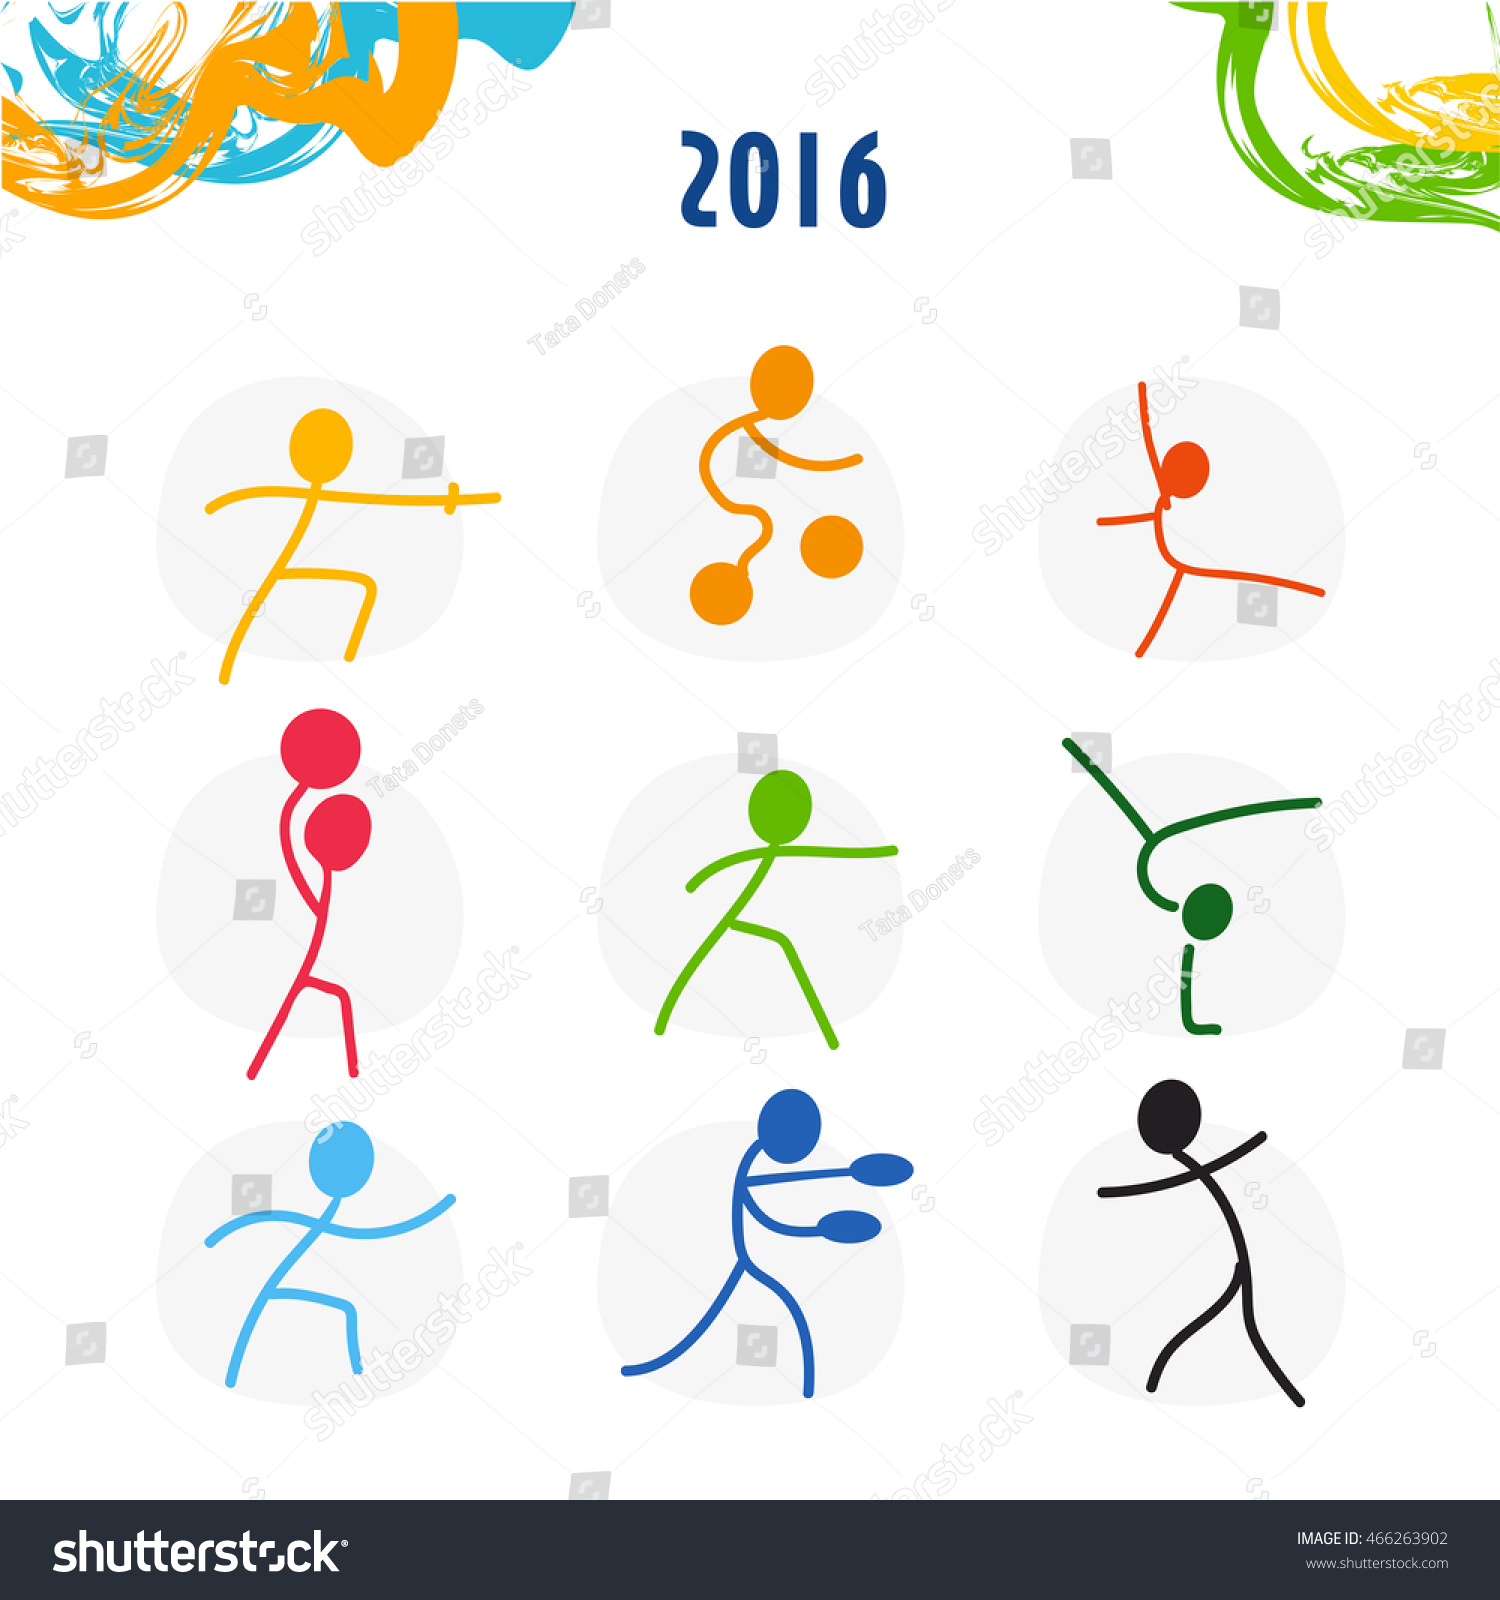 Summer olympic games sport icons set stock vector 466263902 summer olympic games sport icons set vector illustrations of sportsmen for olympiad 2016 in rio buycottarizona